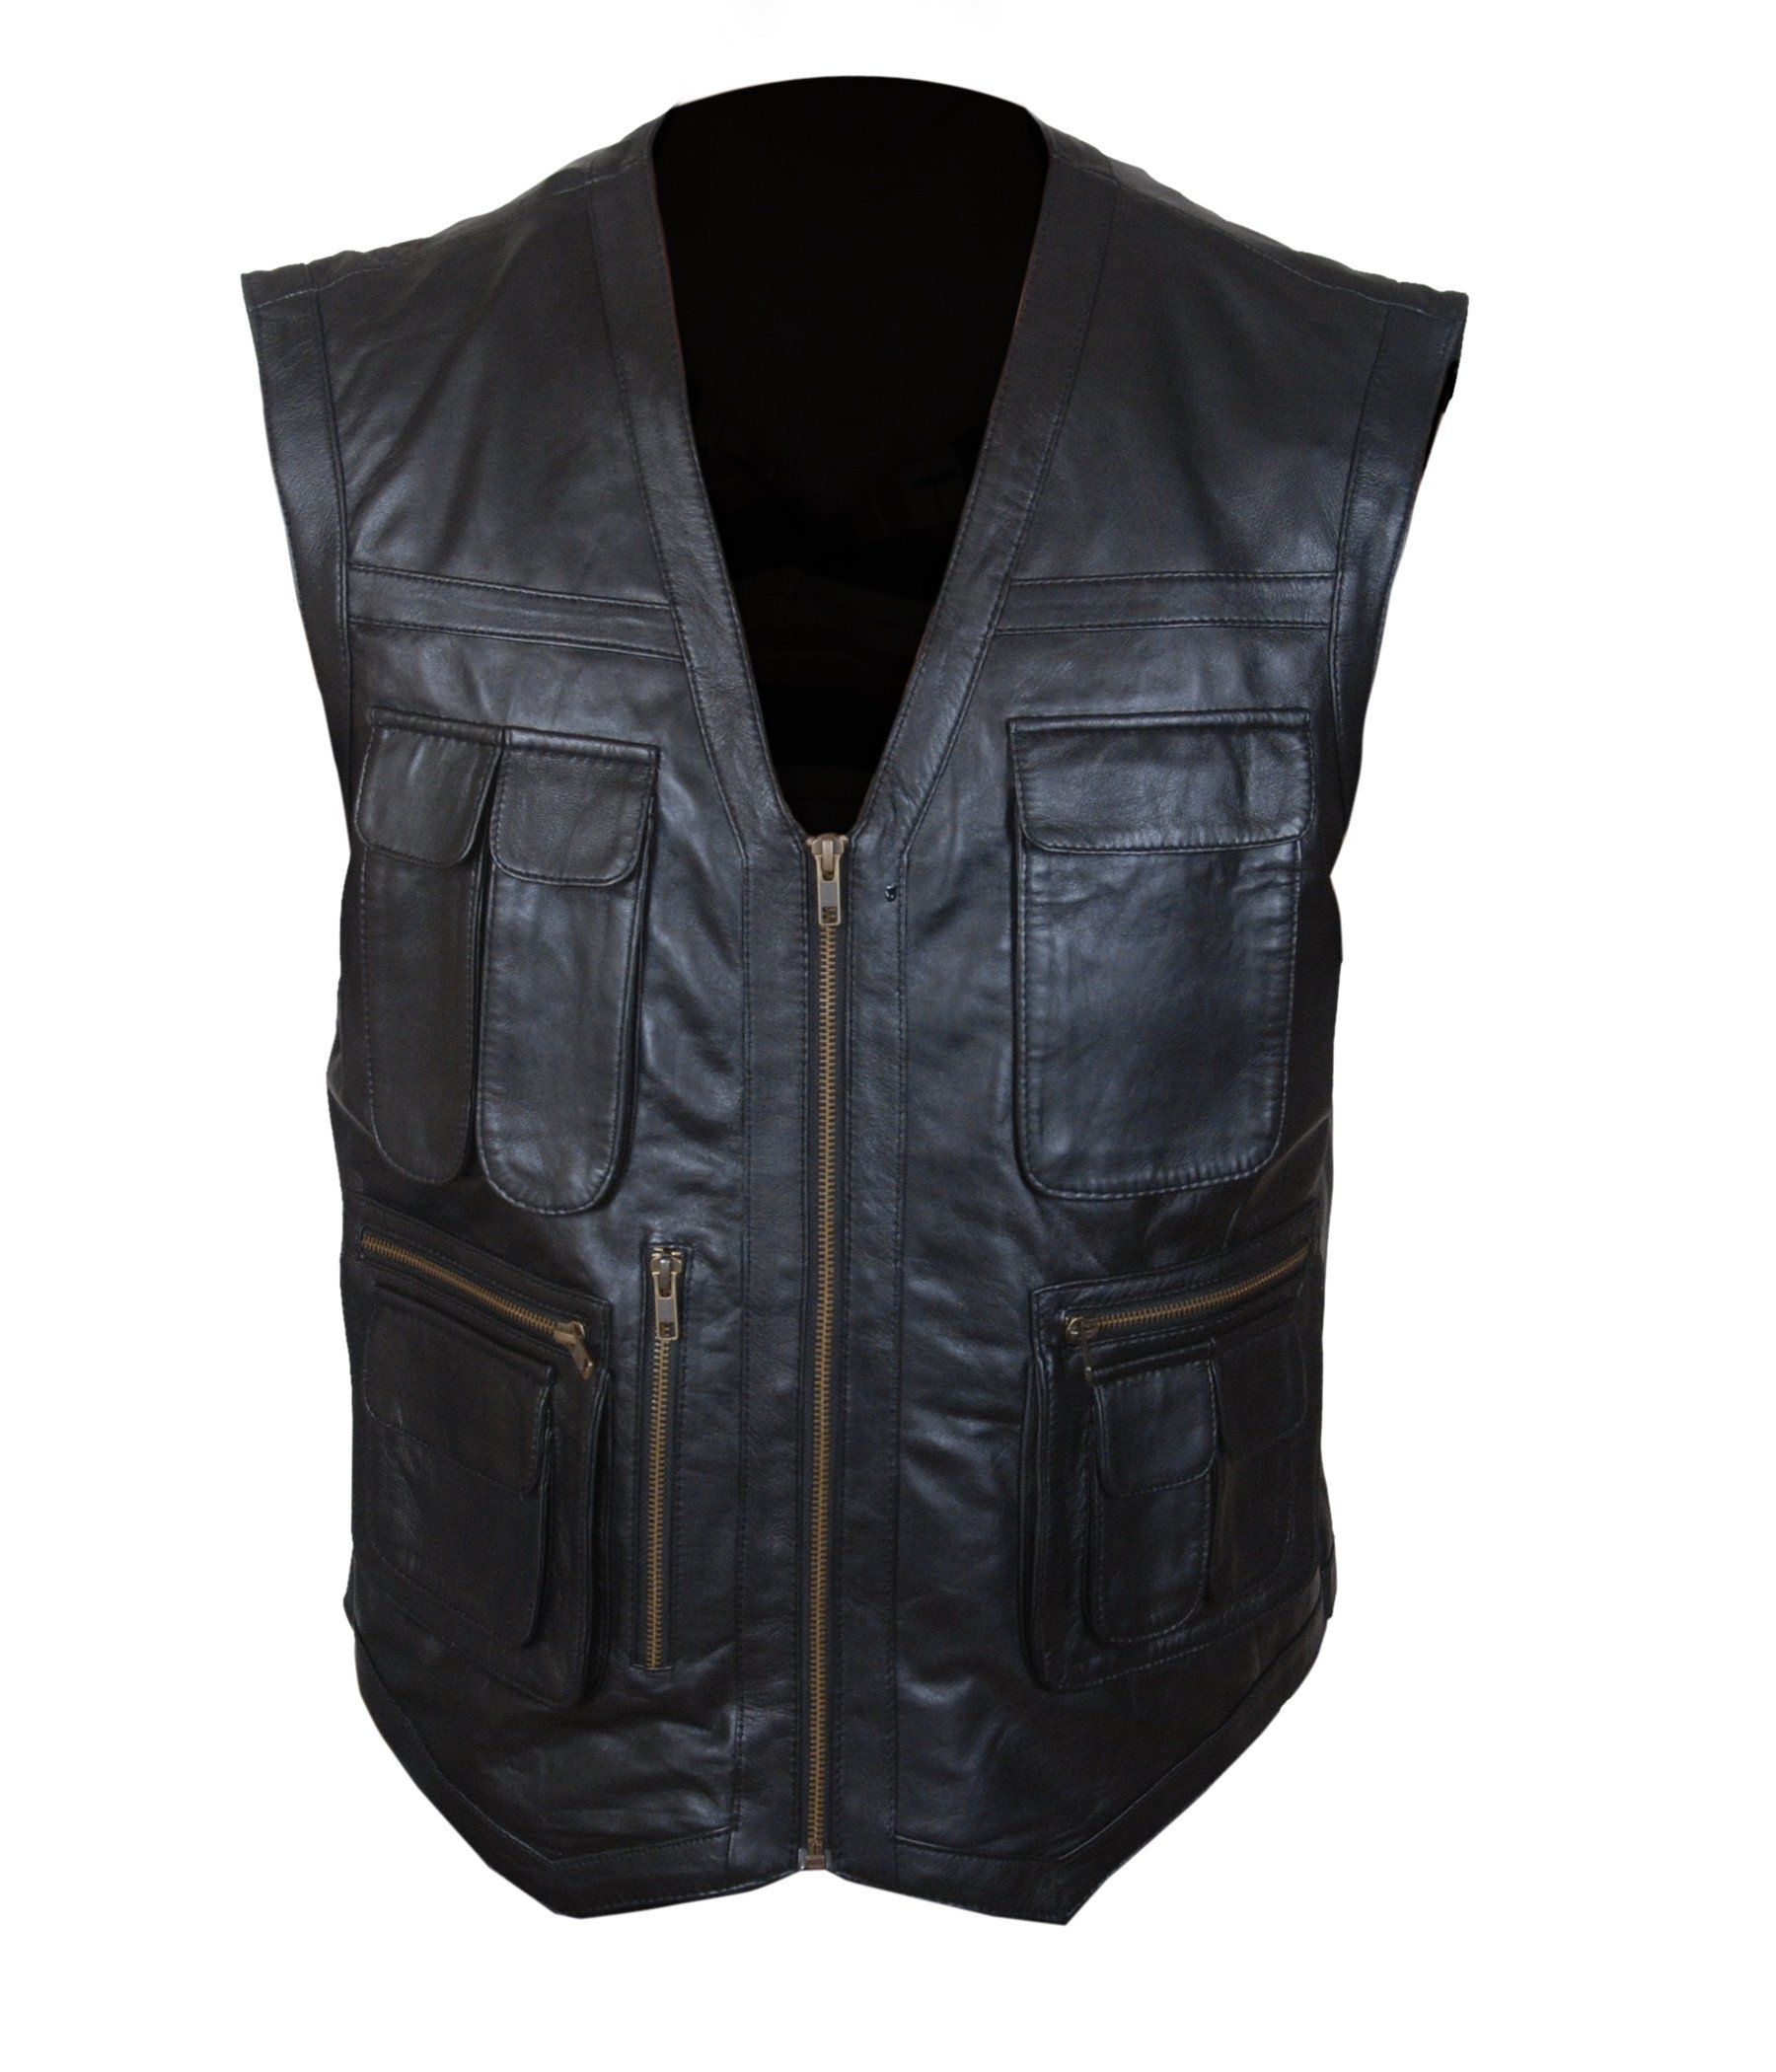 F&H Boy's Jurassic World Chris Pratt Owen Grady Synthetic Leather Vest XL Black by Flesh & Hide